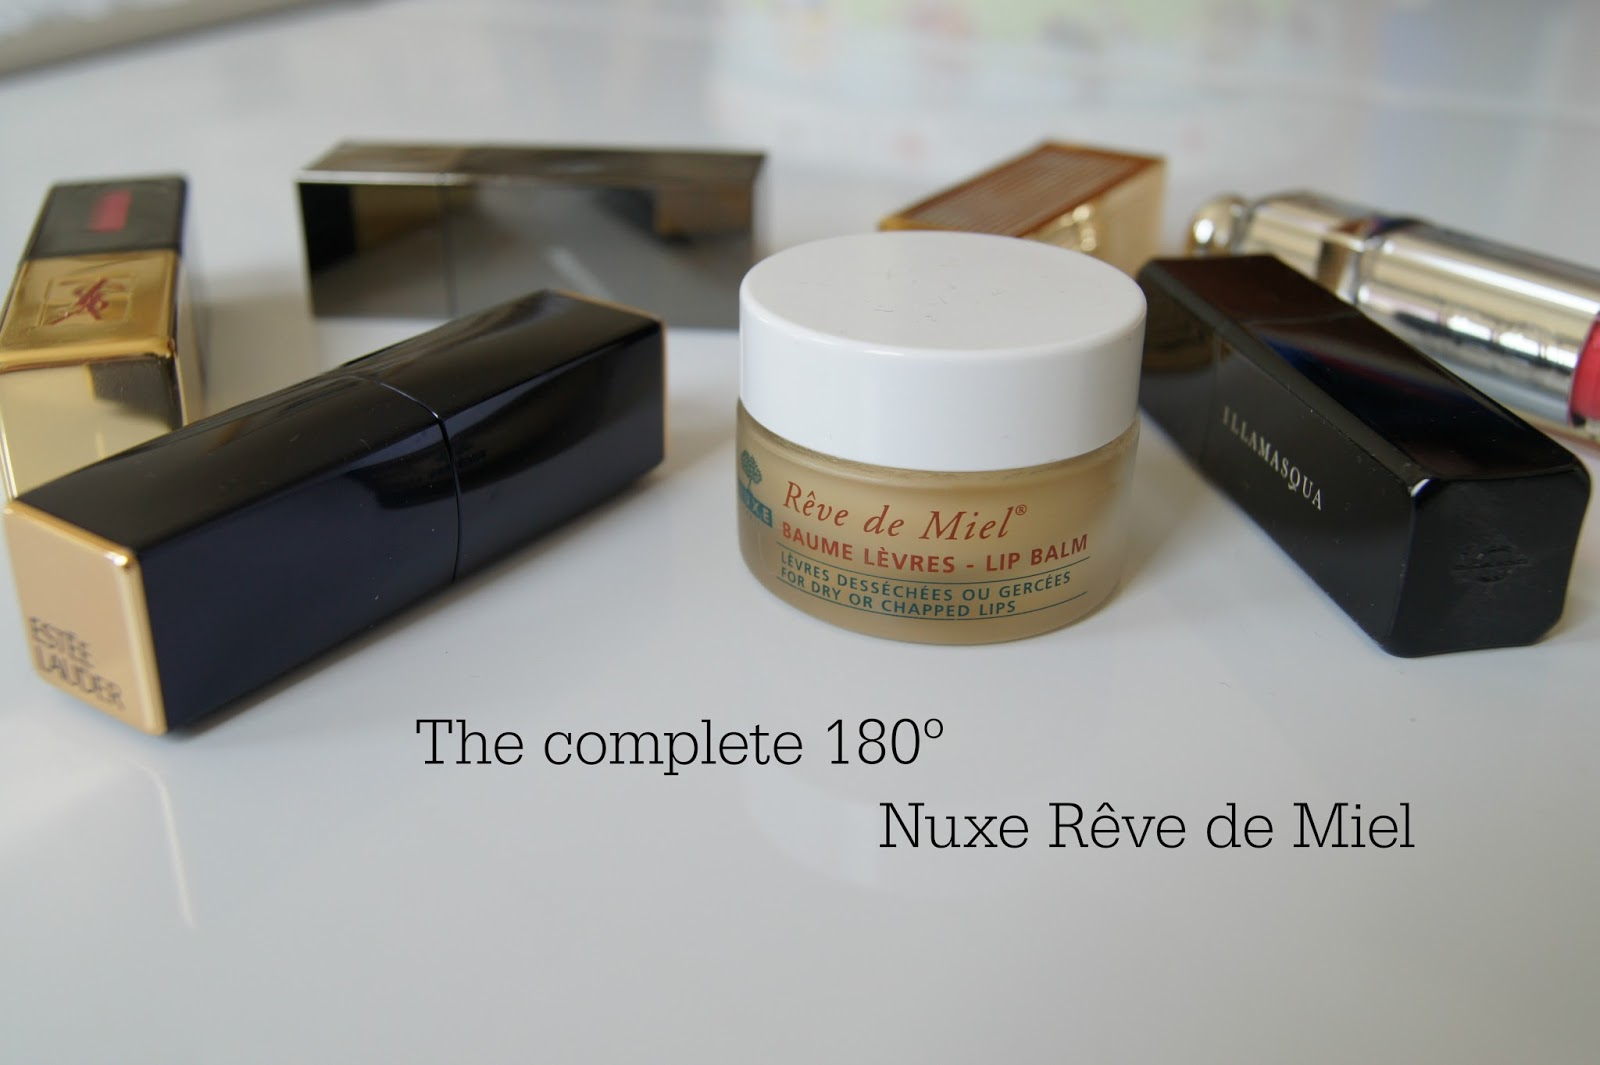 Nuxe reve de miel review